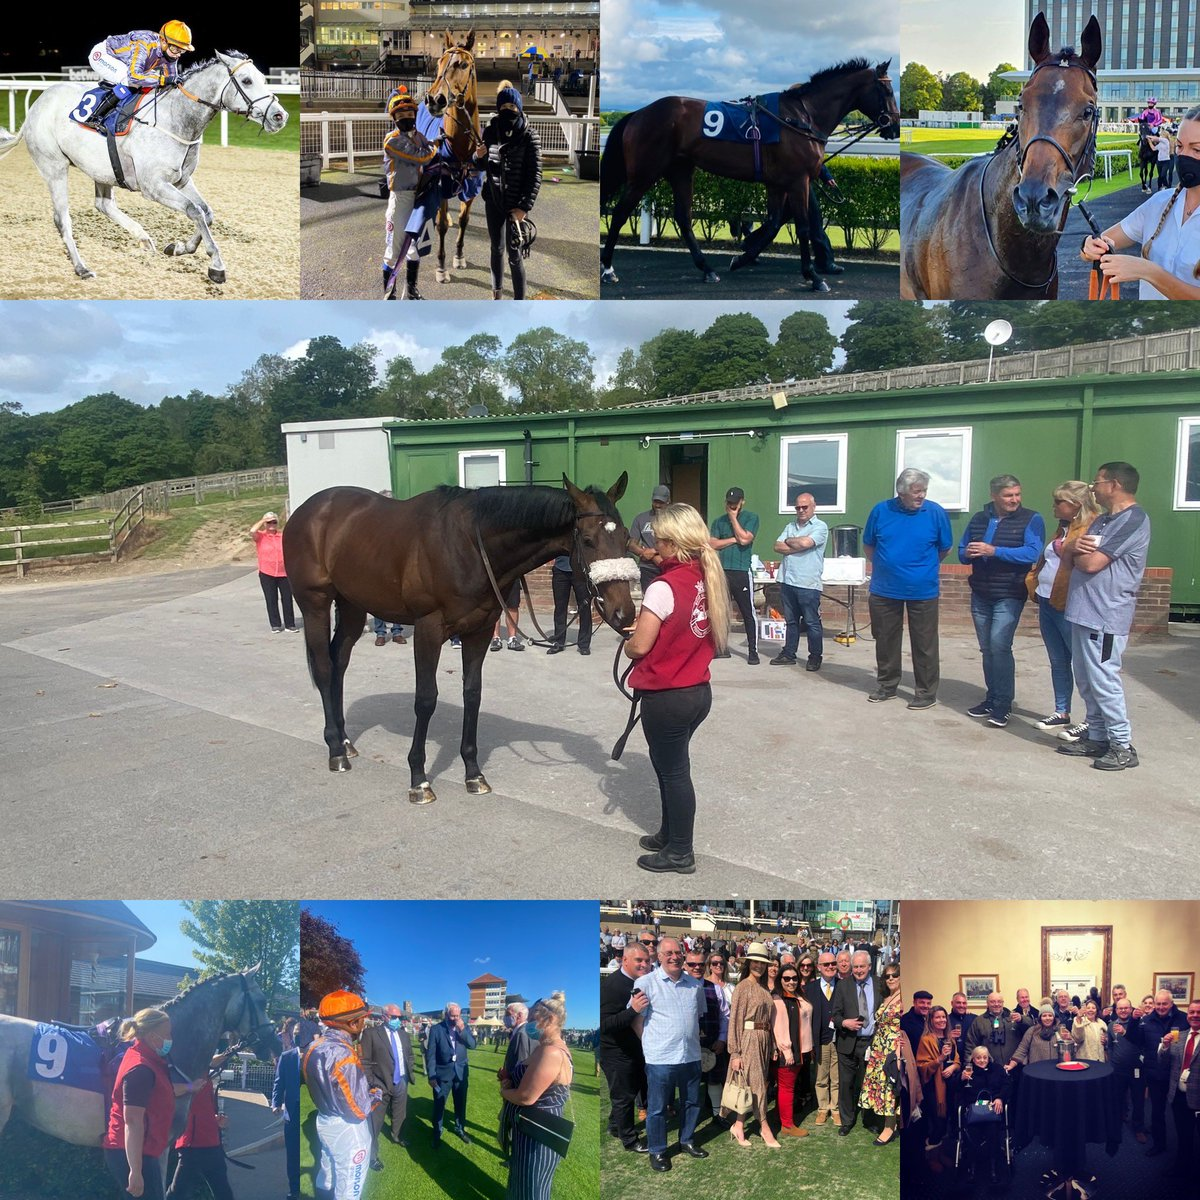 We have availability for membership, £100pm for 5 horses or £175pm for 10 horses. Numerous benefits, lots of opportunities to go racing and behind the scenes access. No Management fees and nothing else to pay. Get in touch for details.  @RacingManagerHQ provided.